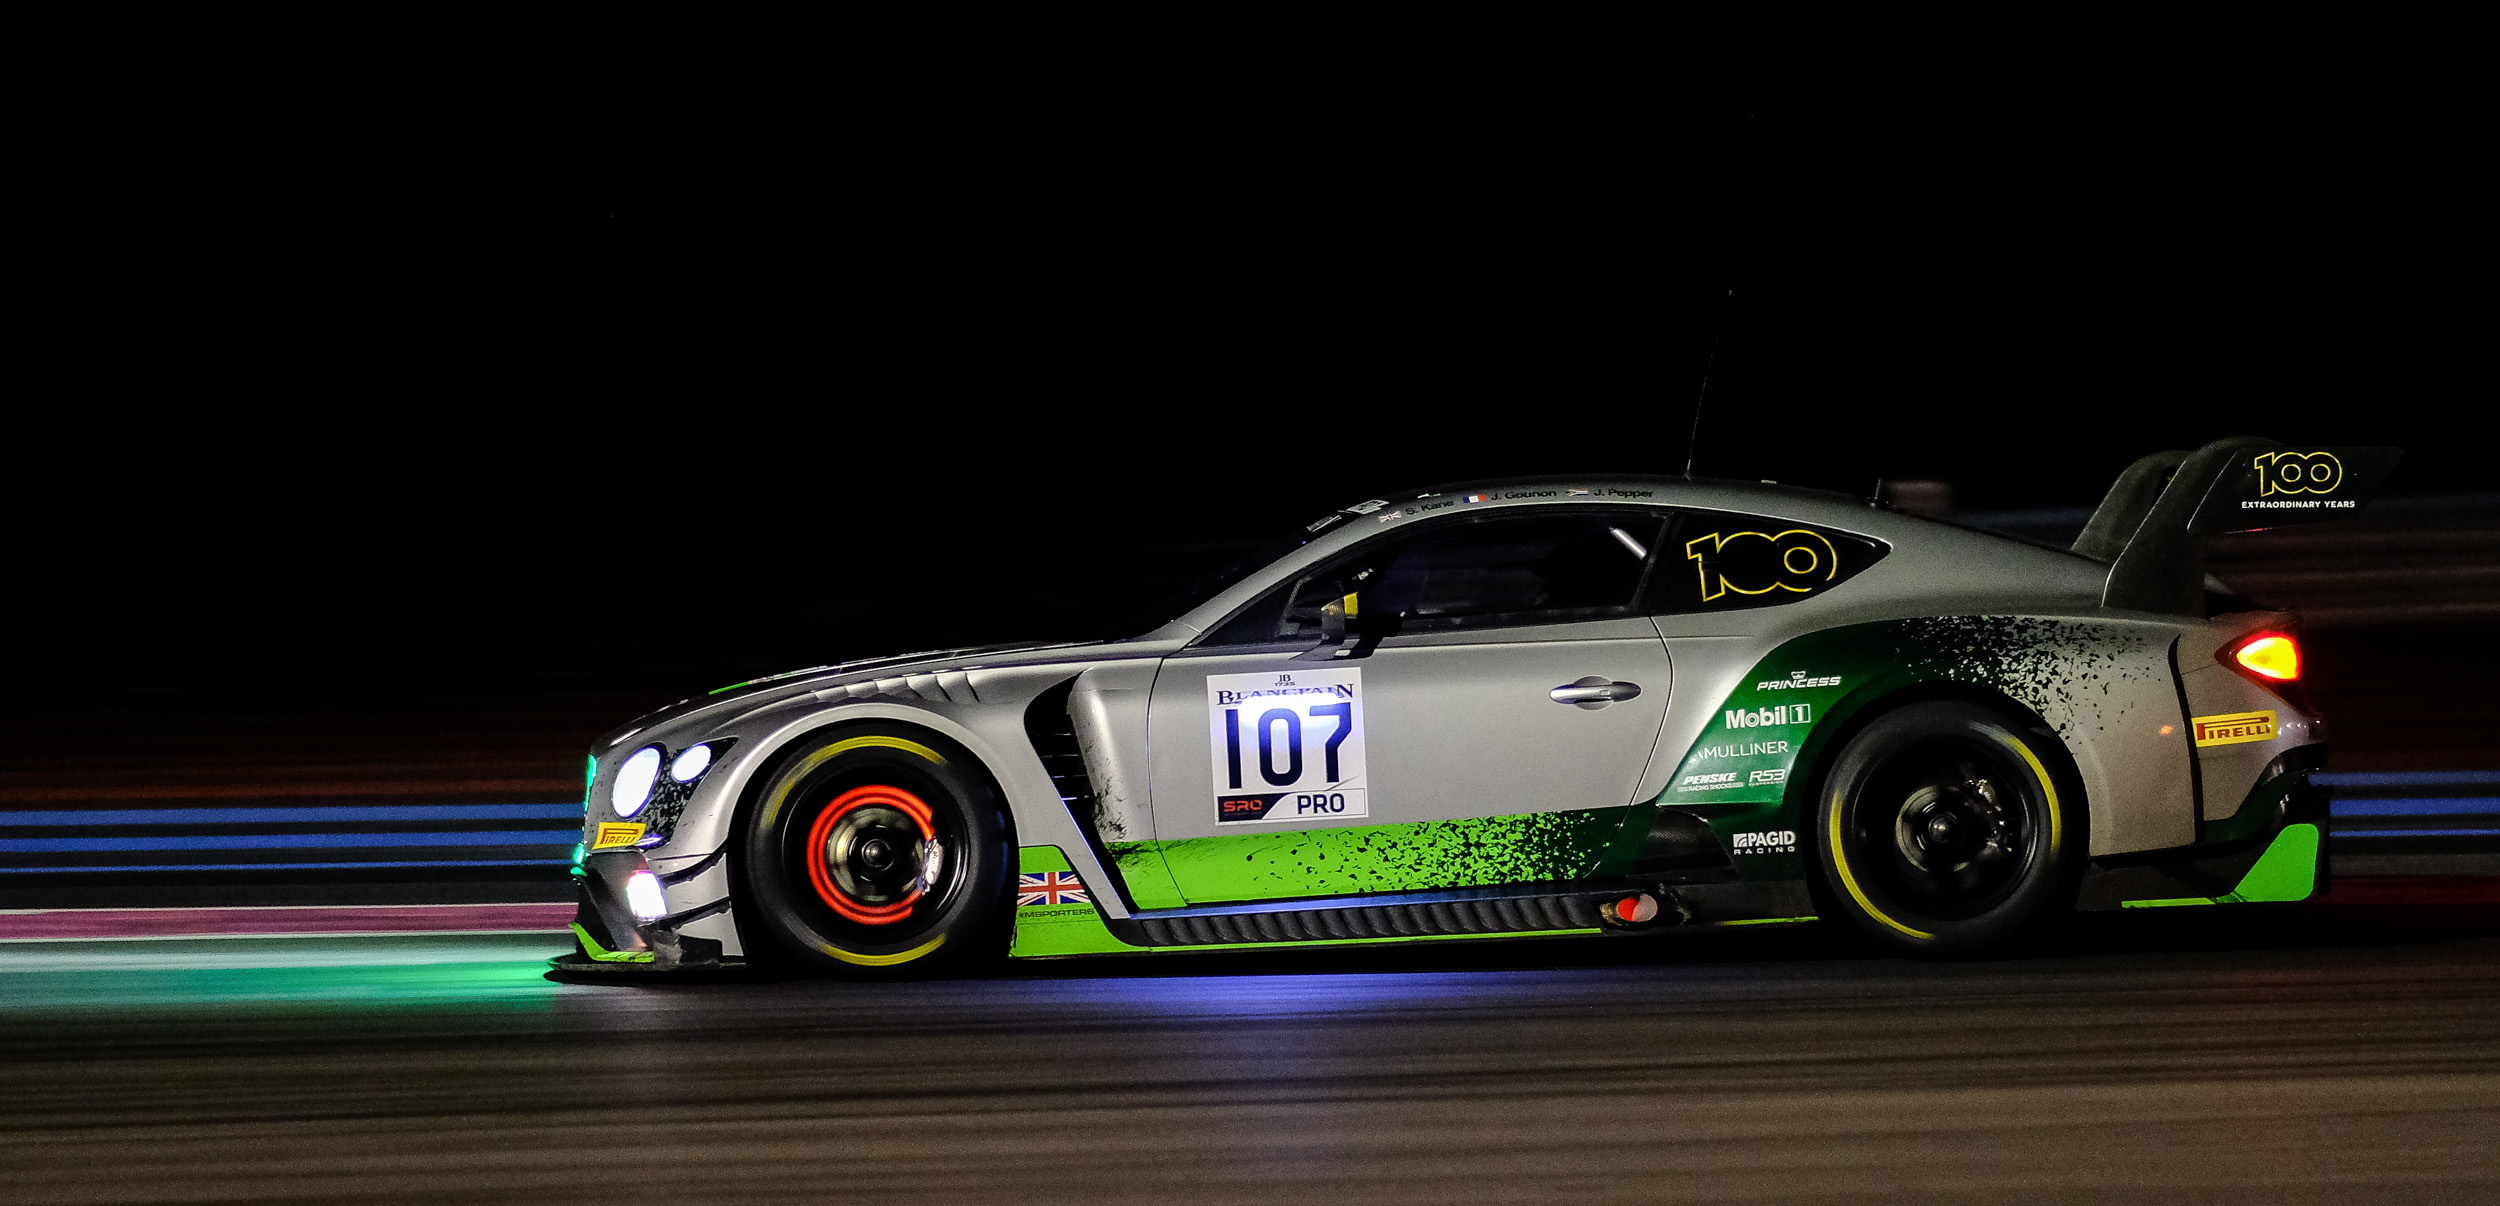 Endurance a Le Castellet<br />Bentley domina dalla pole